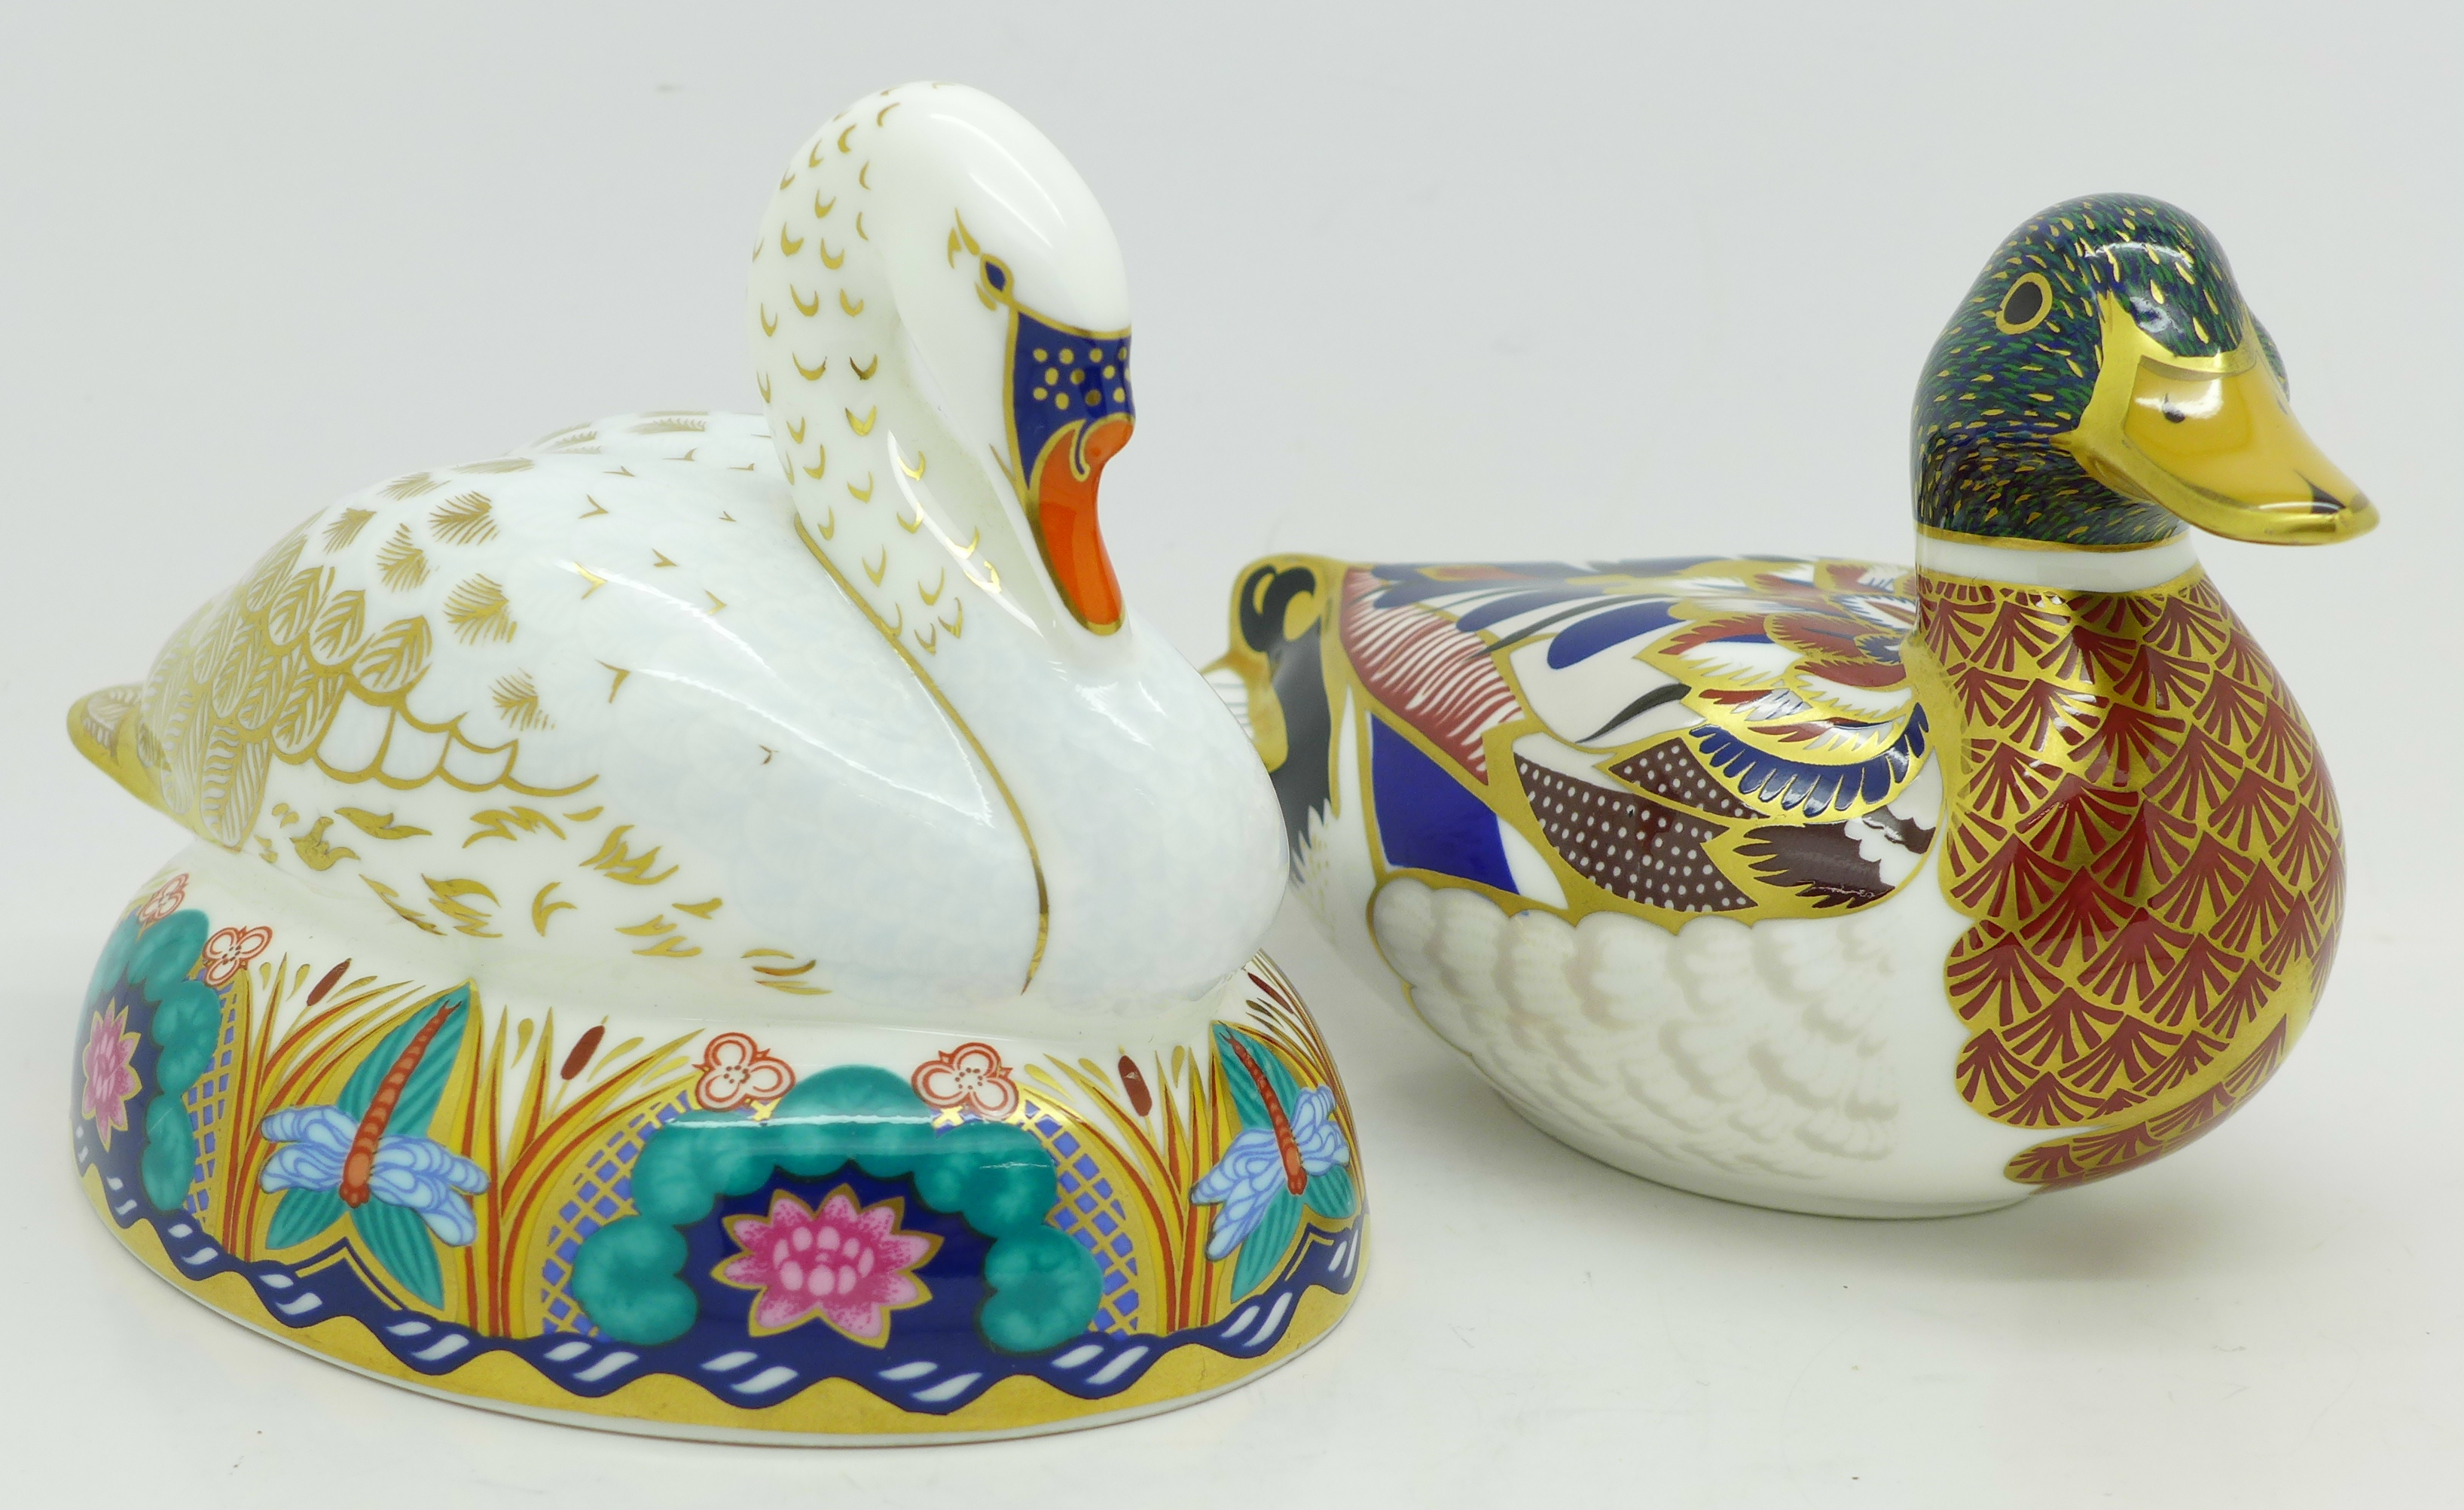 Lot 611 - Two Royal Crown Derby paperweights